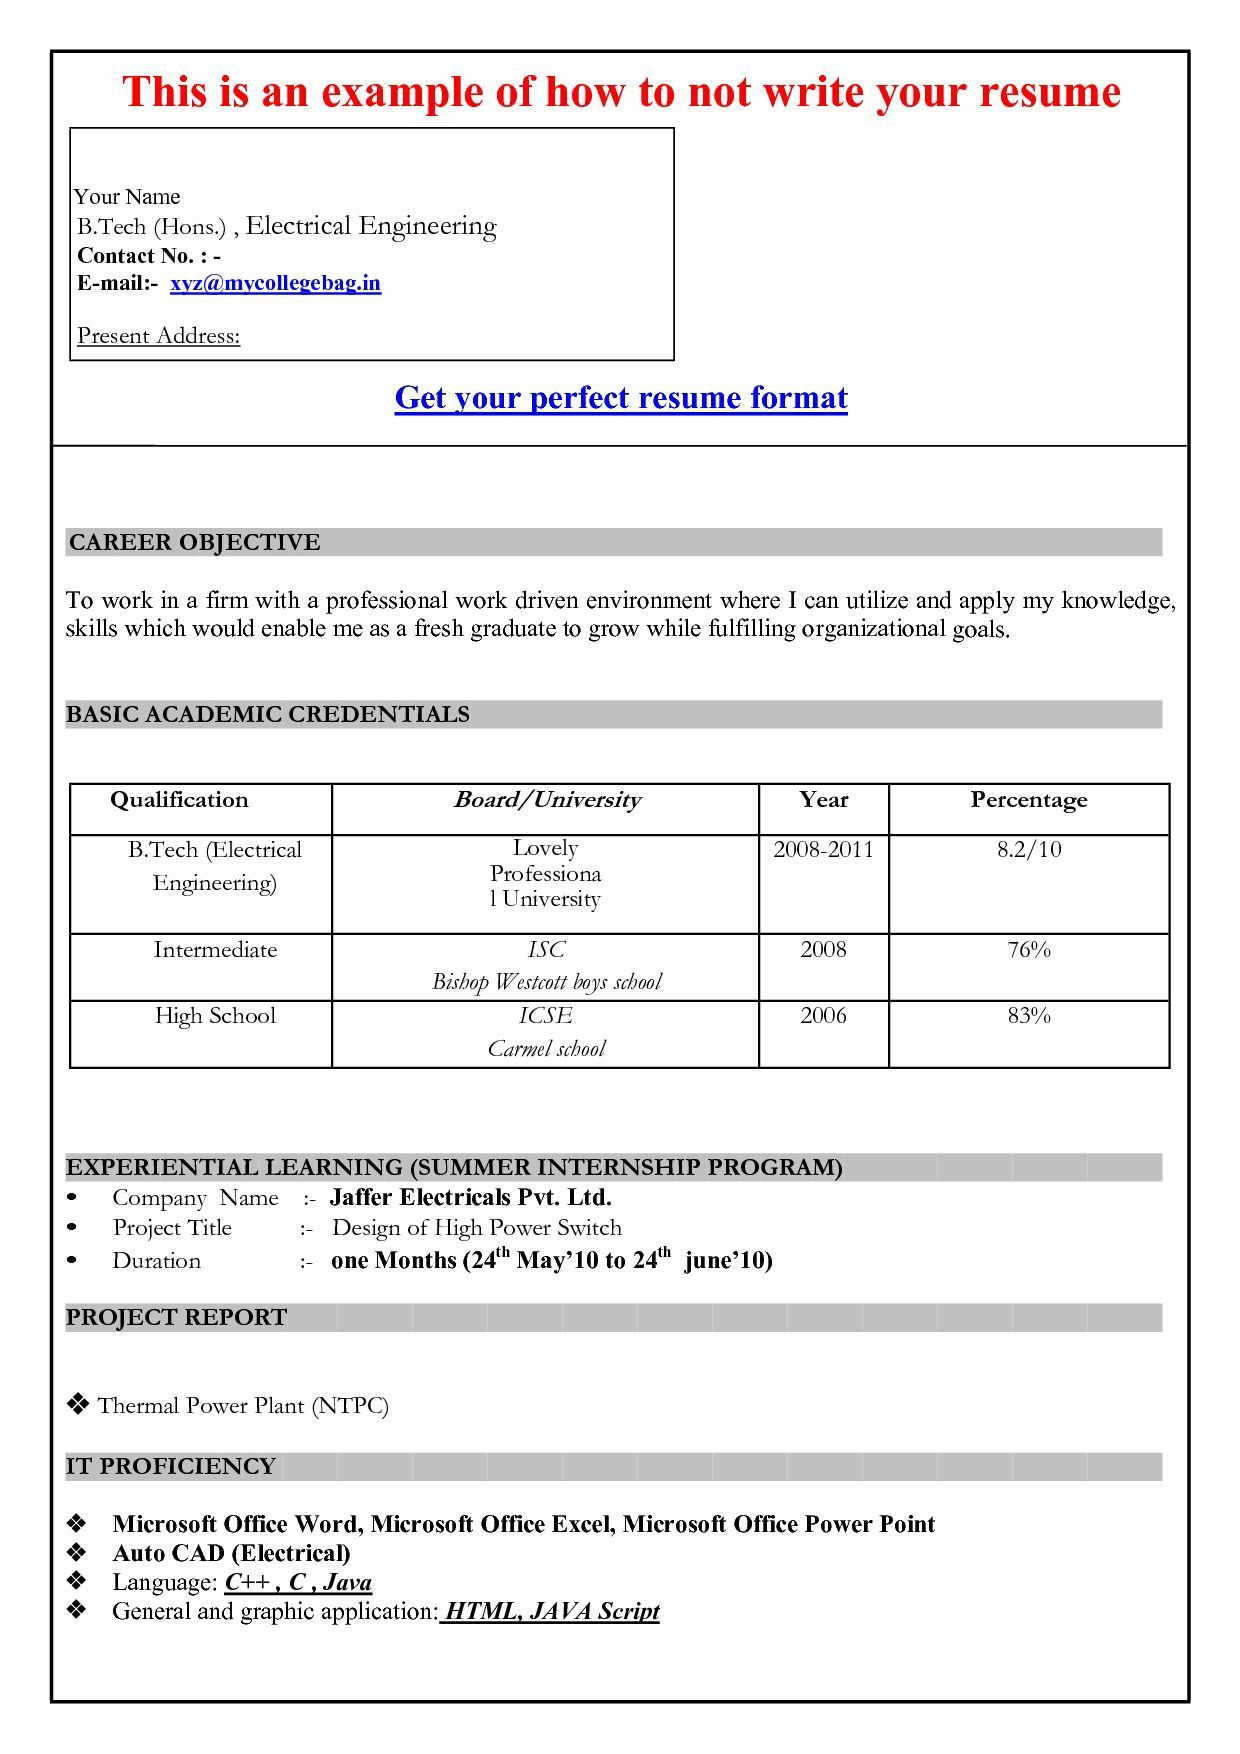 001 Dreaded Resume Sample Template Microsoft Word 2007 Full